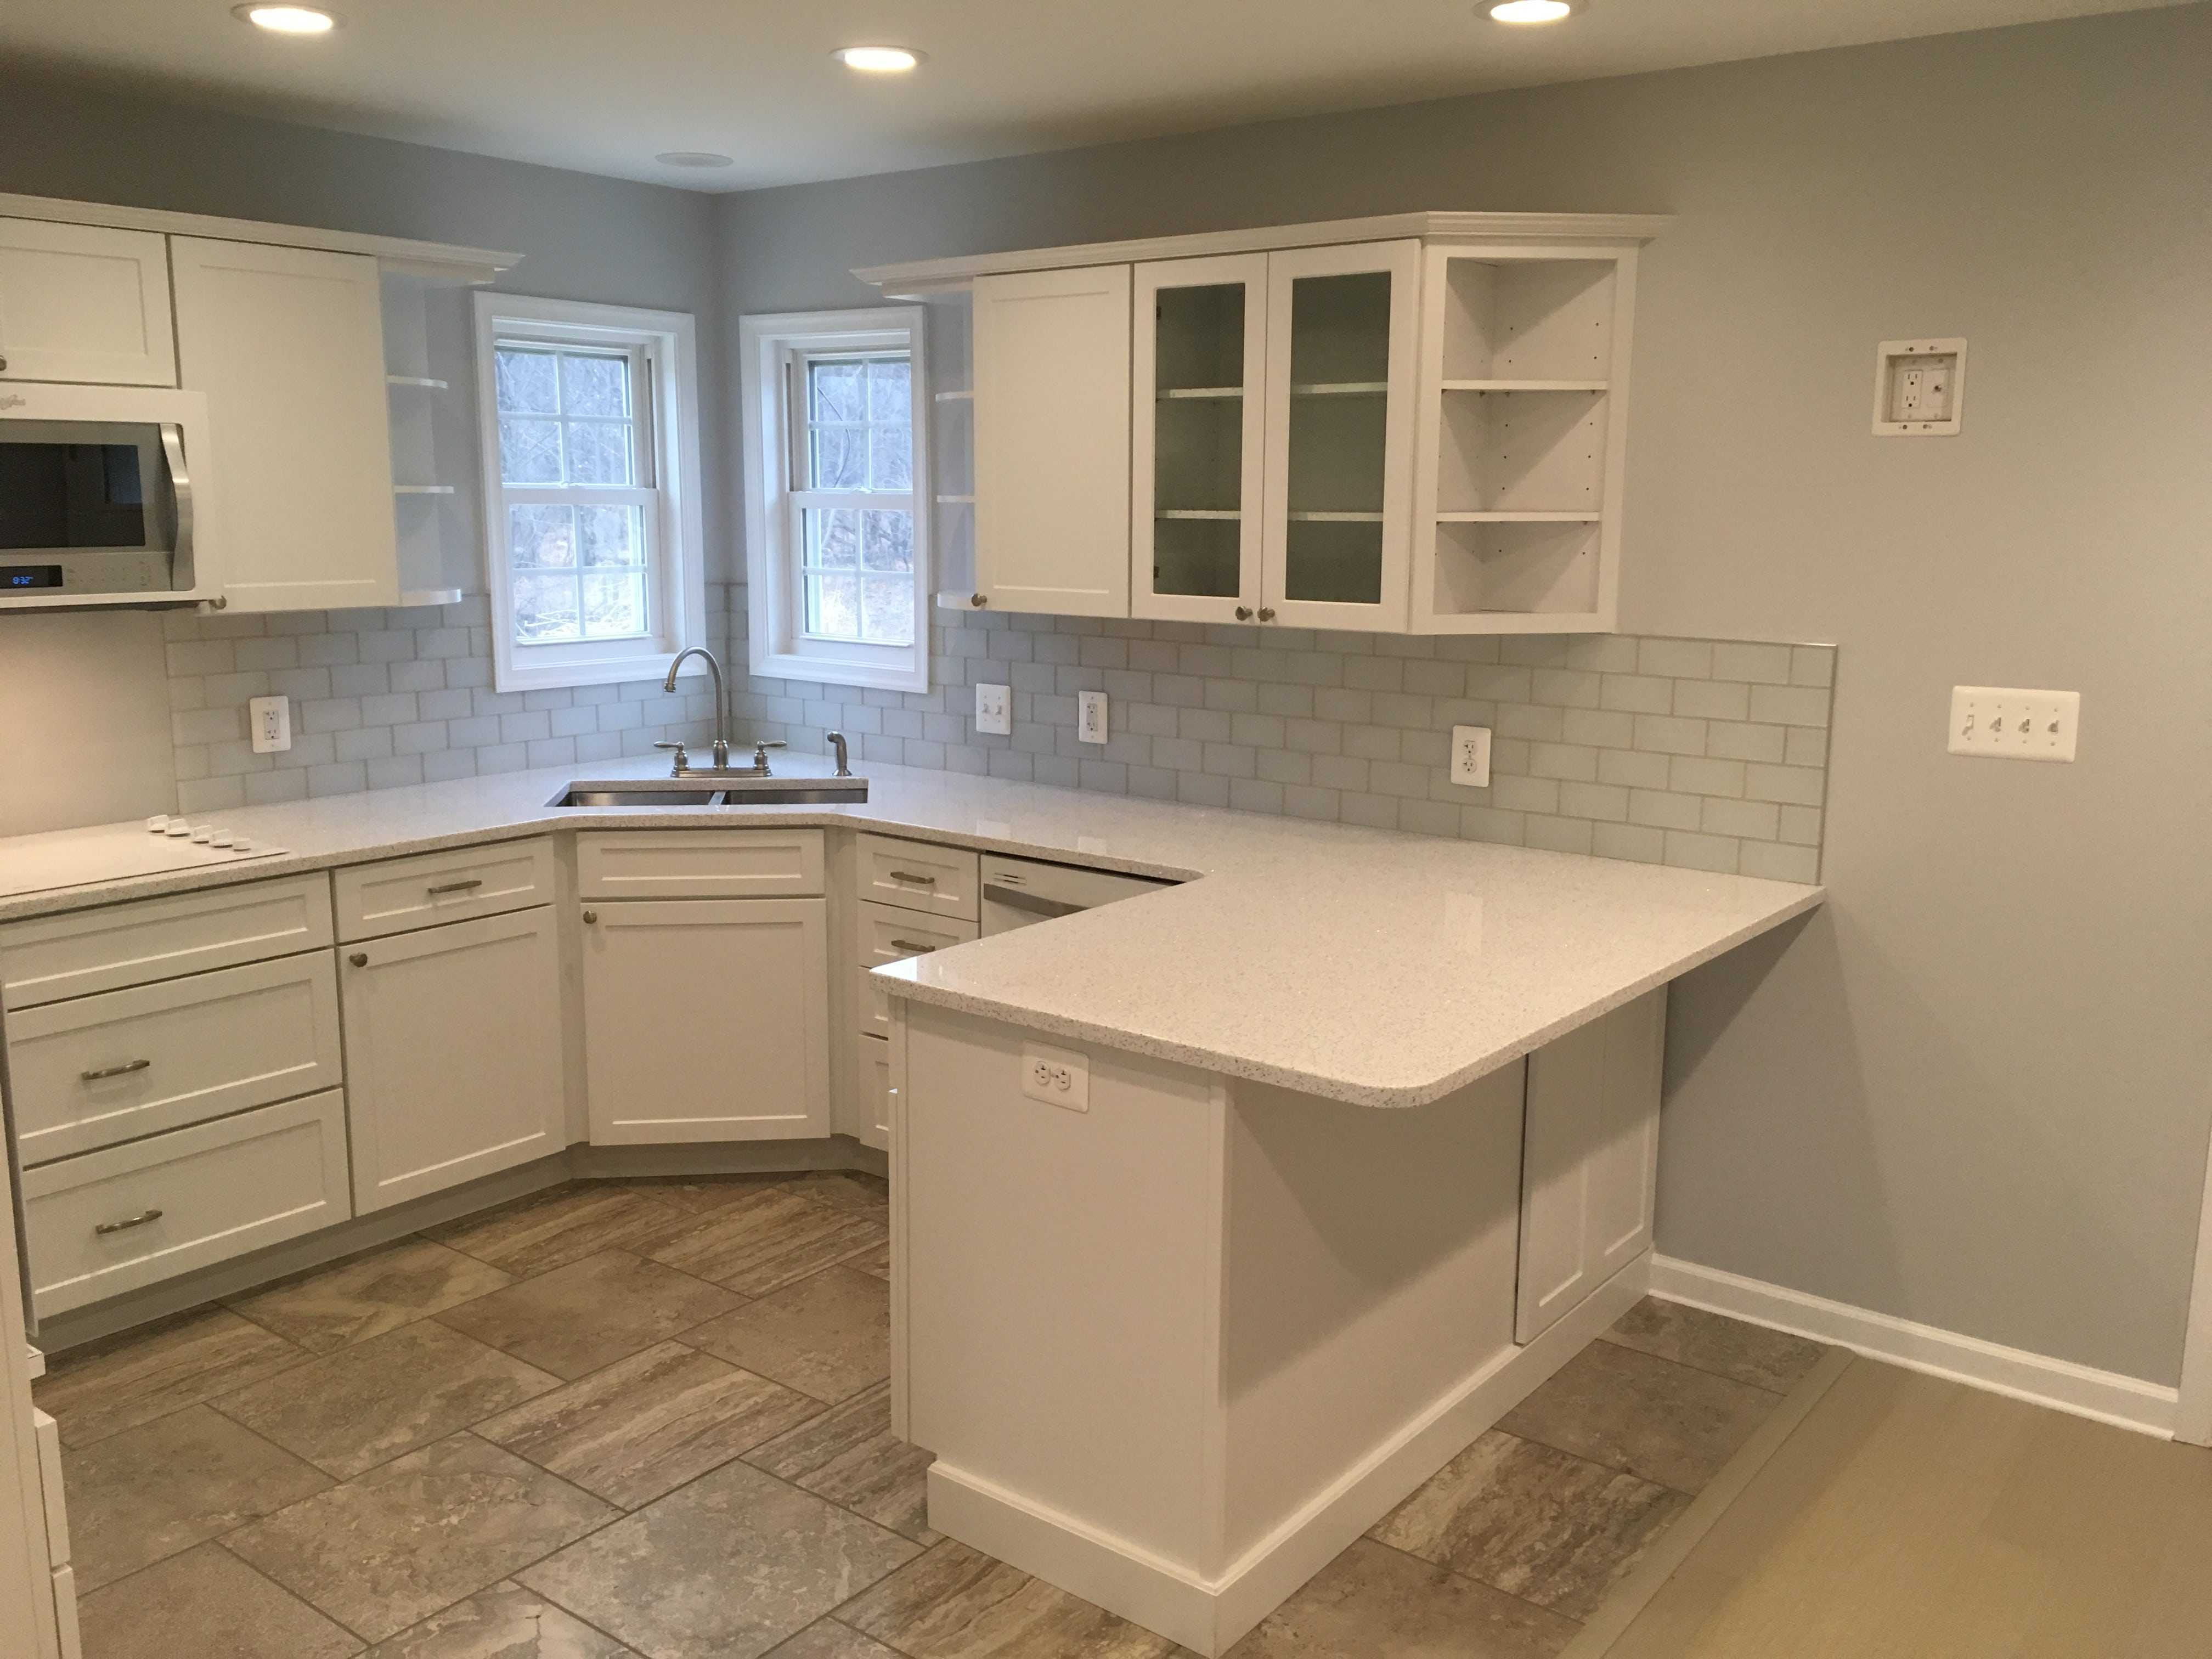 Budgeting For Kitchen Remodeling Your Priorities Miller S Residential Creations Llc